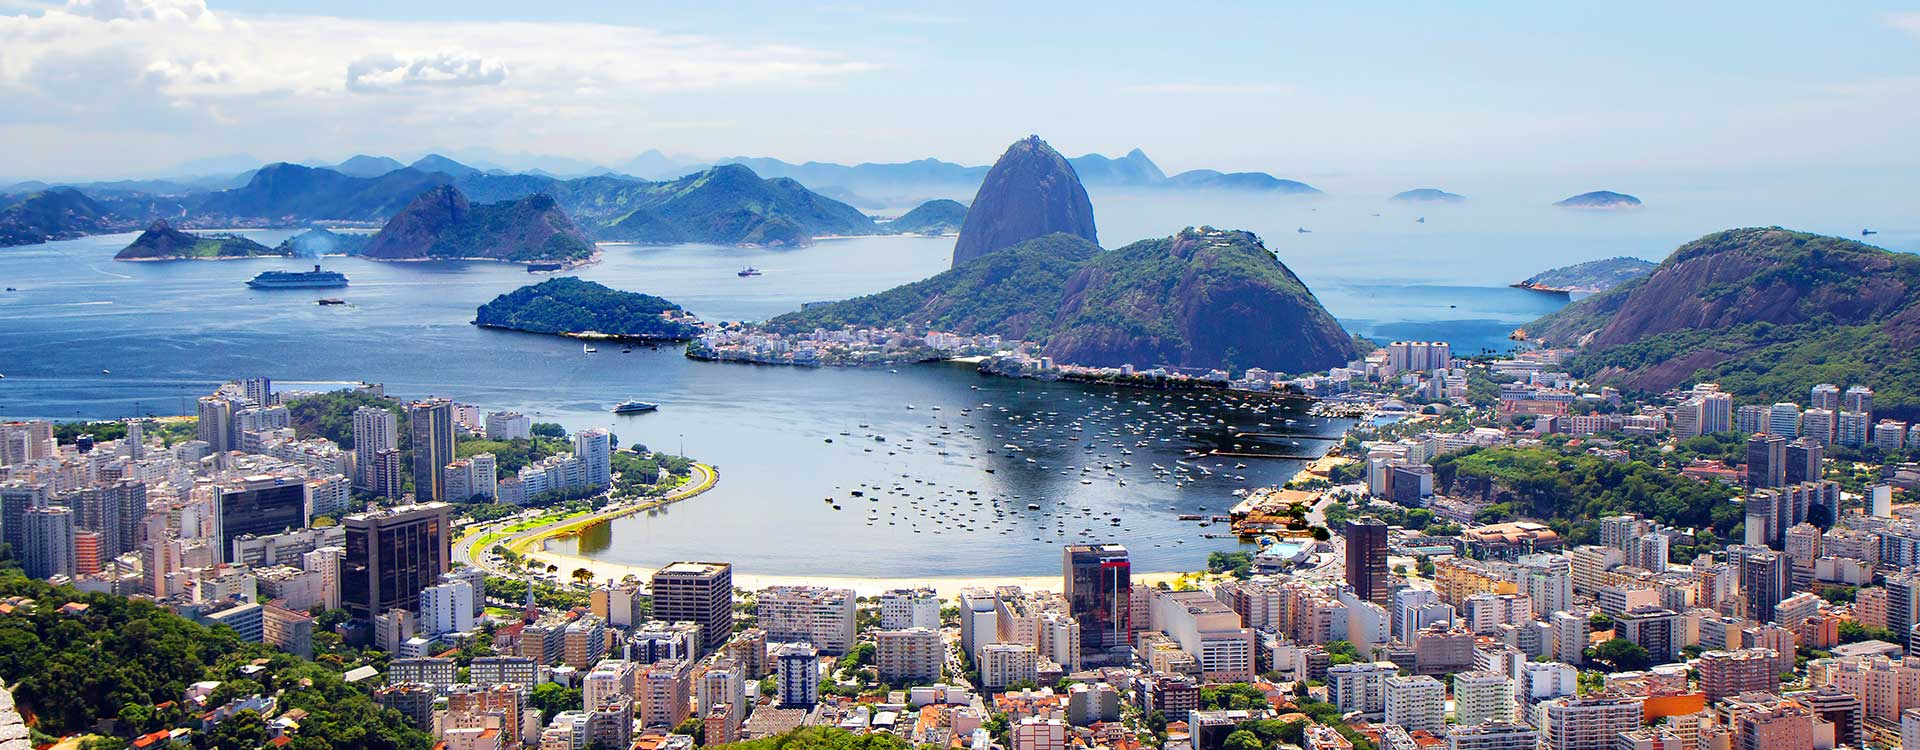 Best Places to Visit and Things to do in Brazil